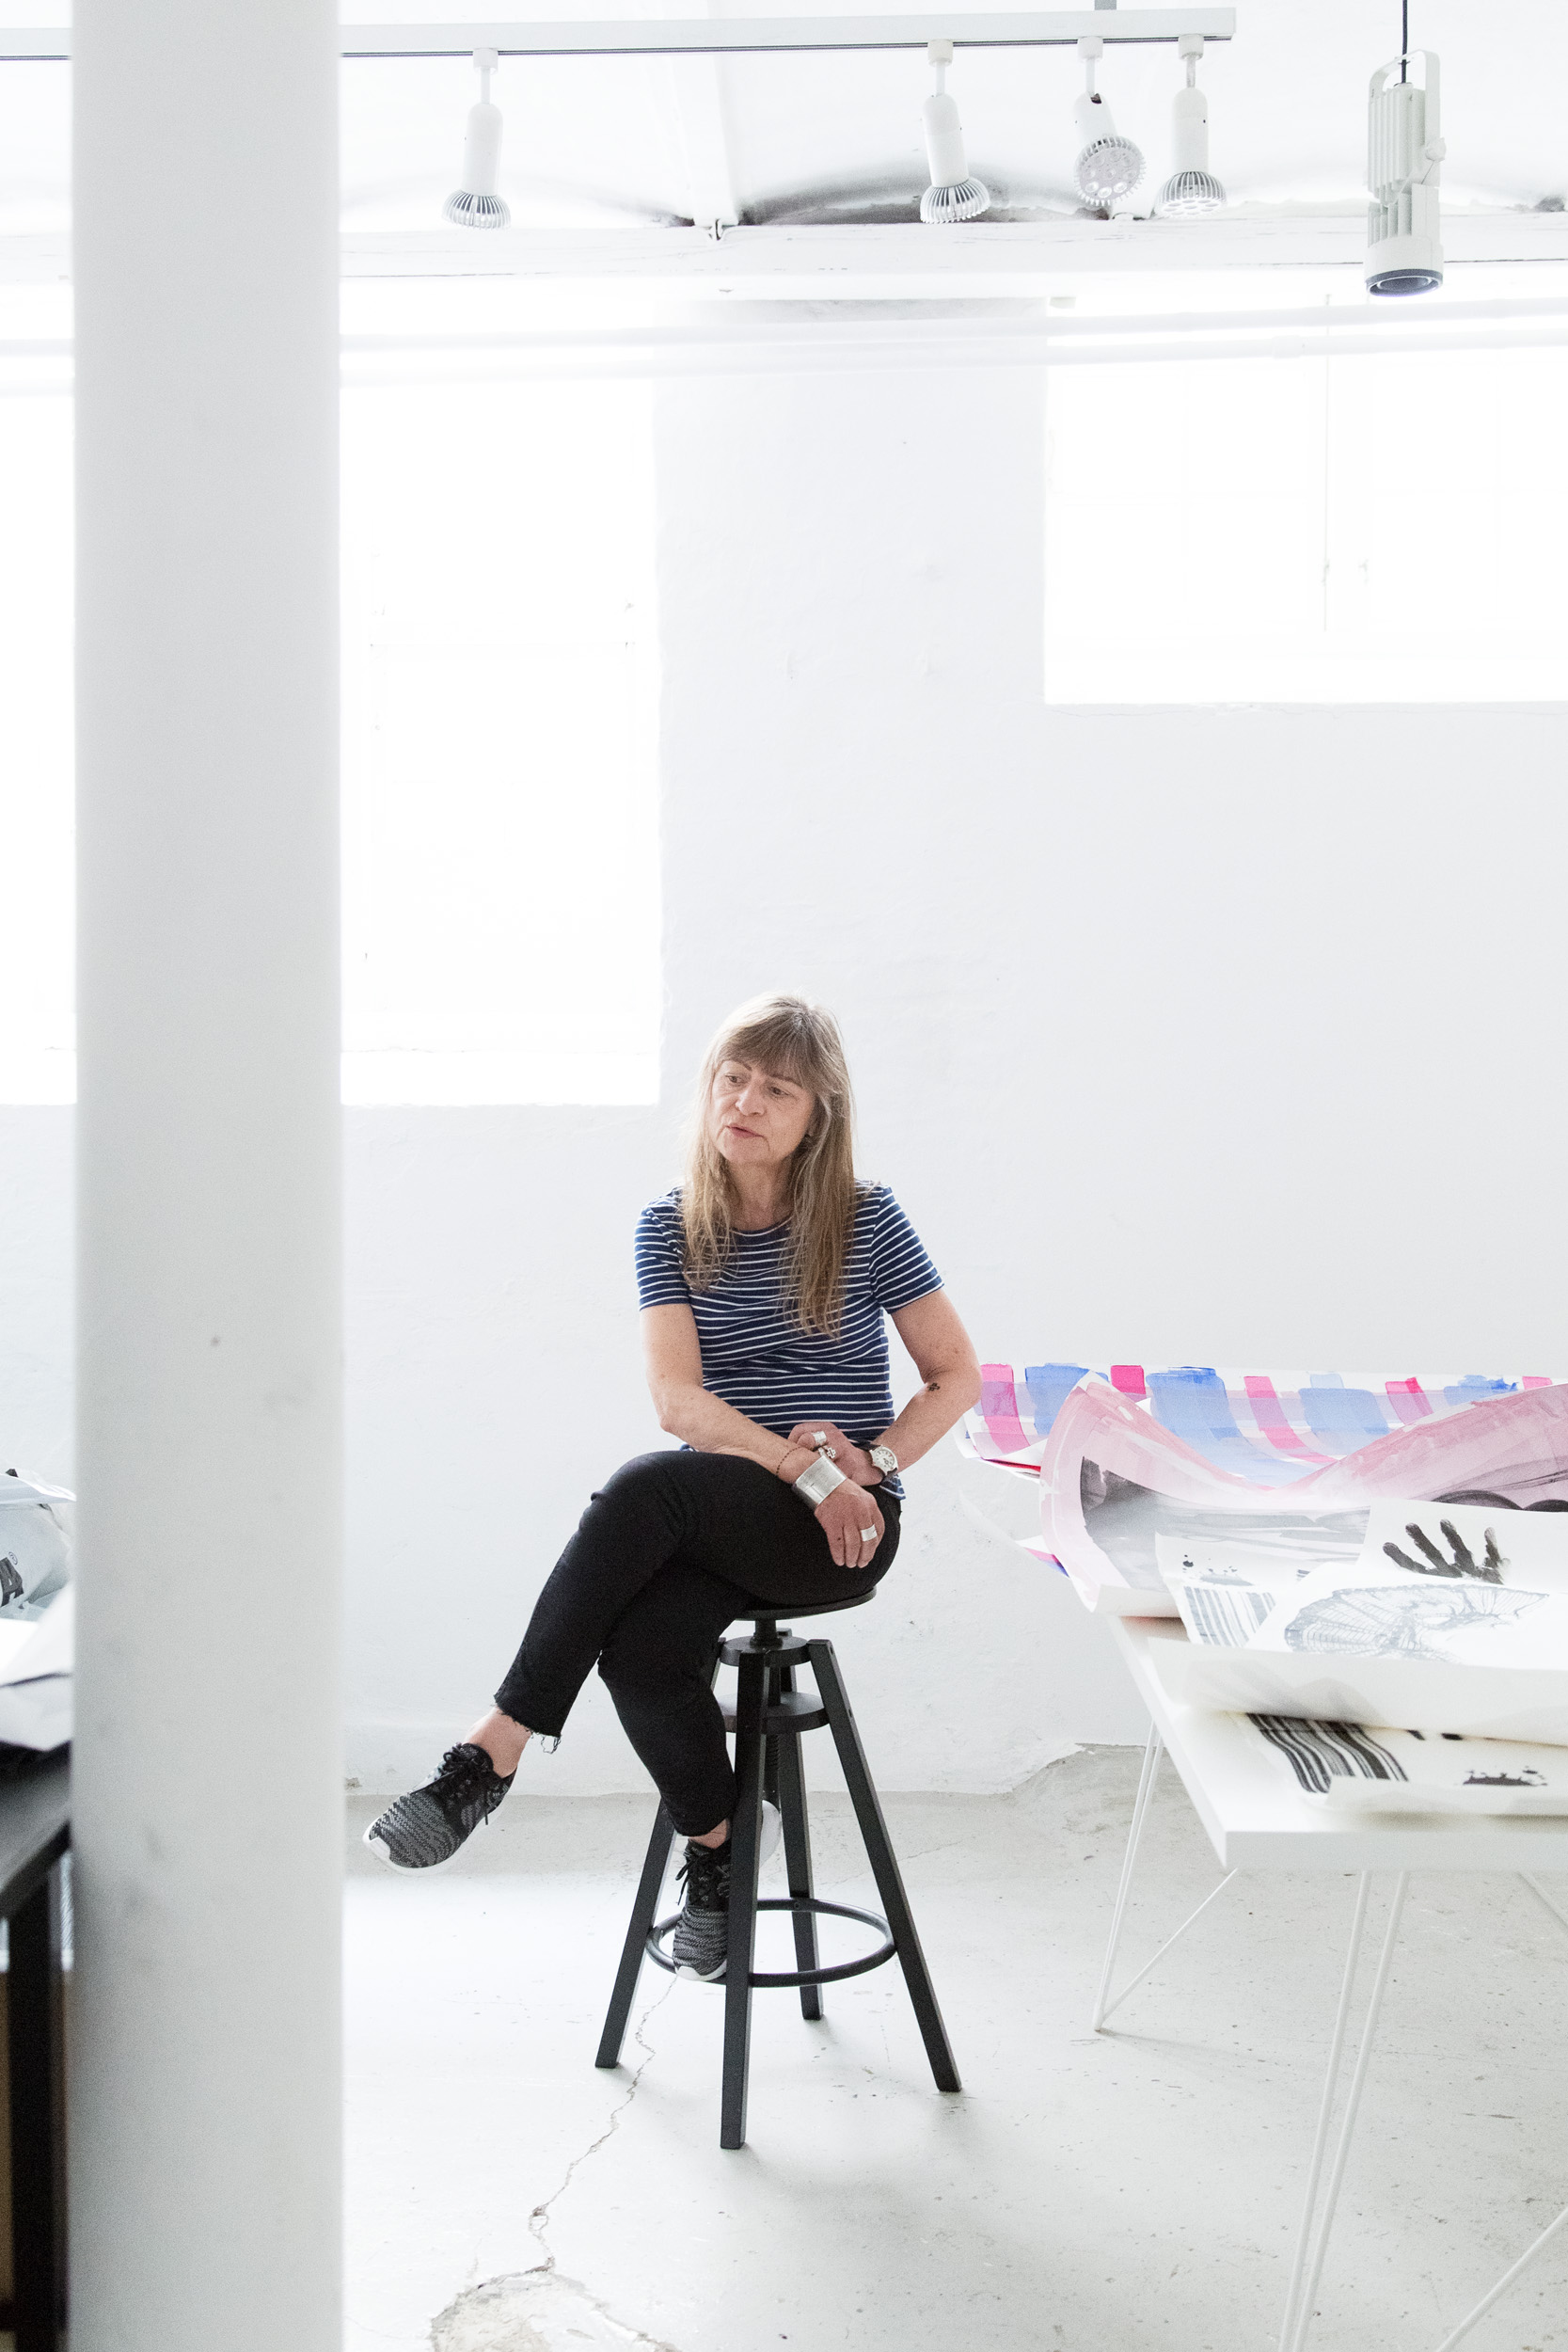 Vibeke Rohland - Photographs and interview from from studio of textile designer and artist Vibeke Rohland for The Biennial for Craft and Design.